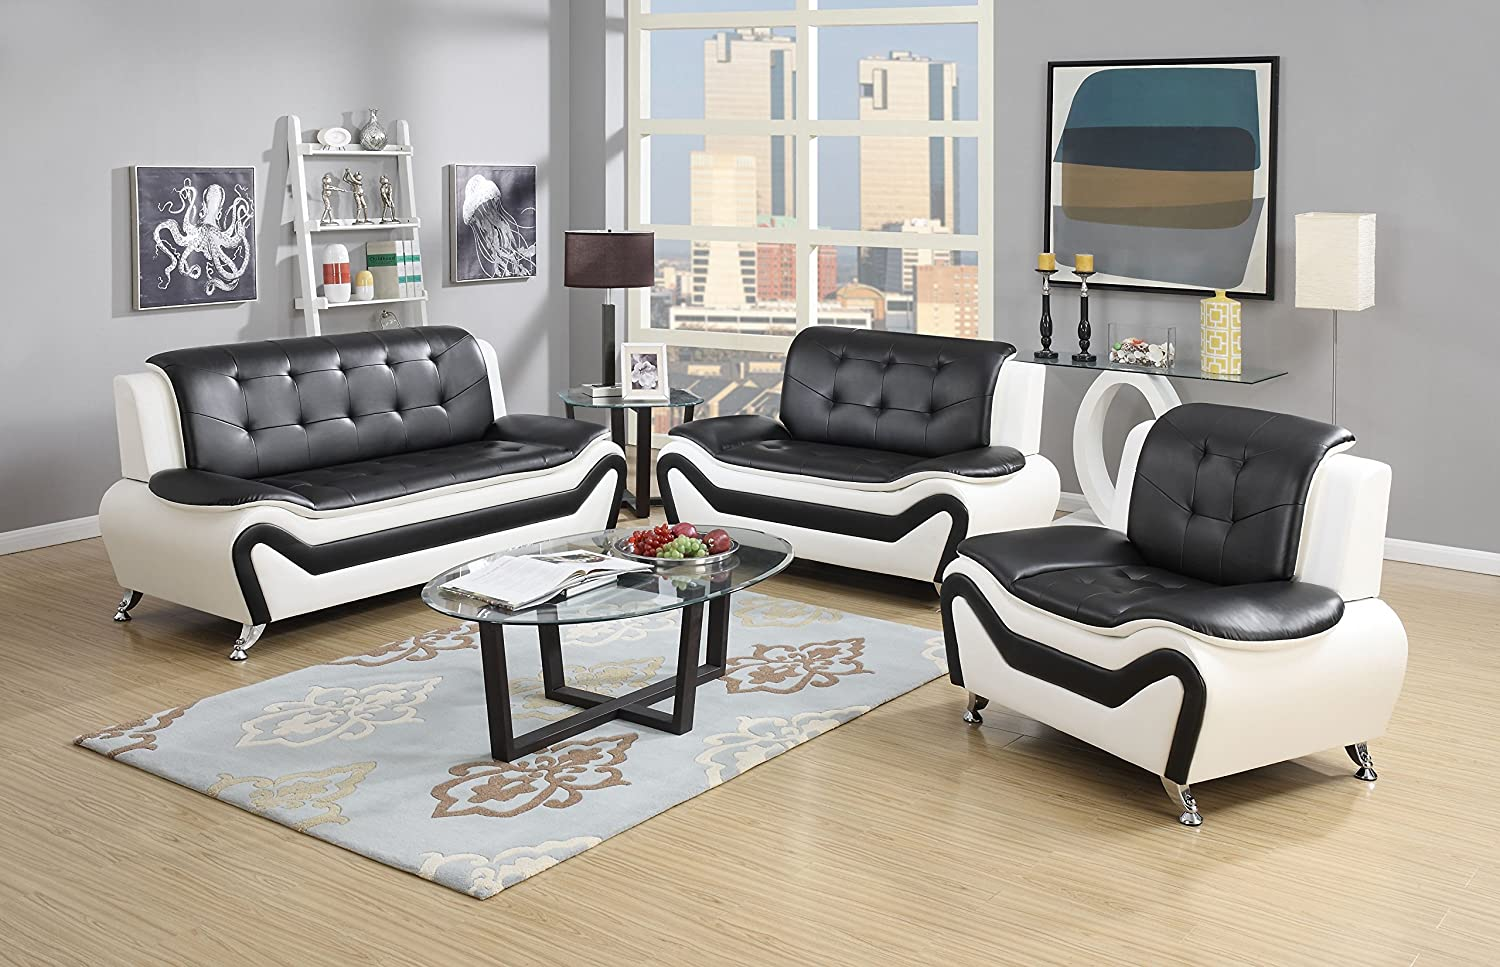 Amazon.com: US Pride Furniture 3 Piece Modern Bonded Leather Sofa Set With  Sofa, Loveseat, And Chair, White/Black: Kitchen U0026 Dining